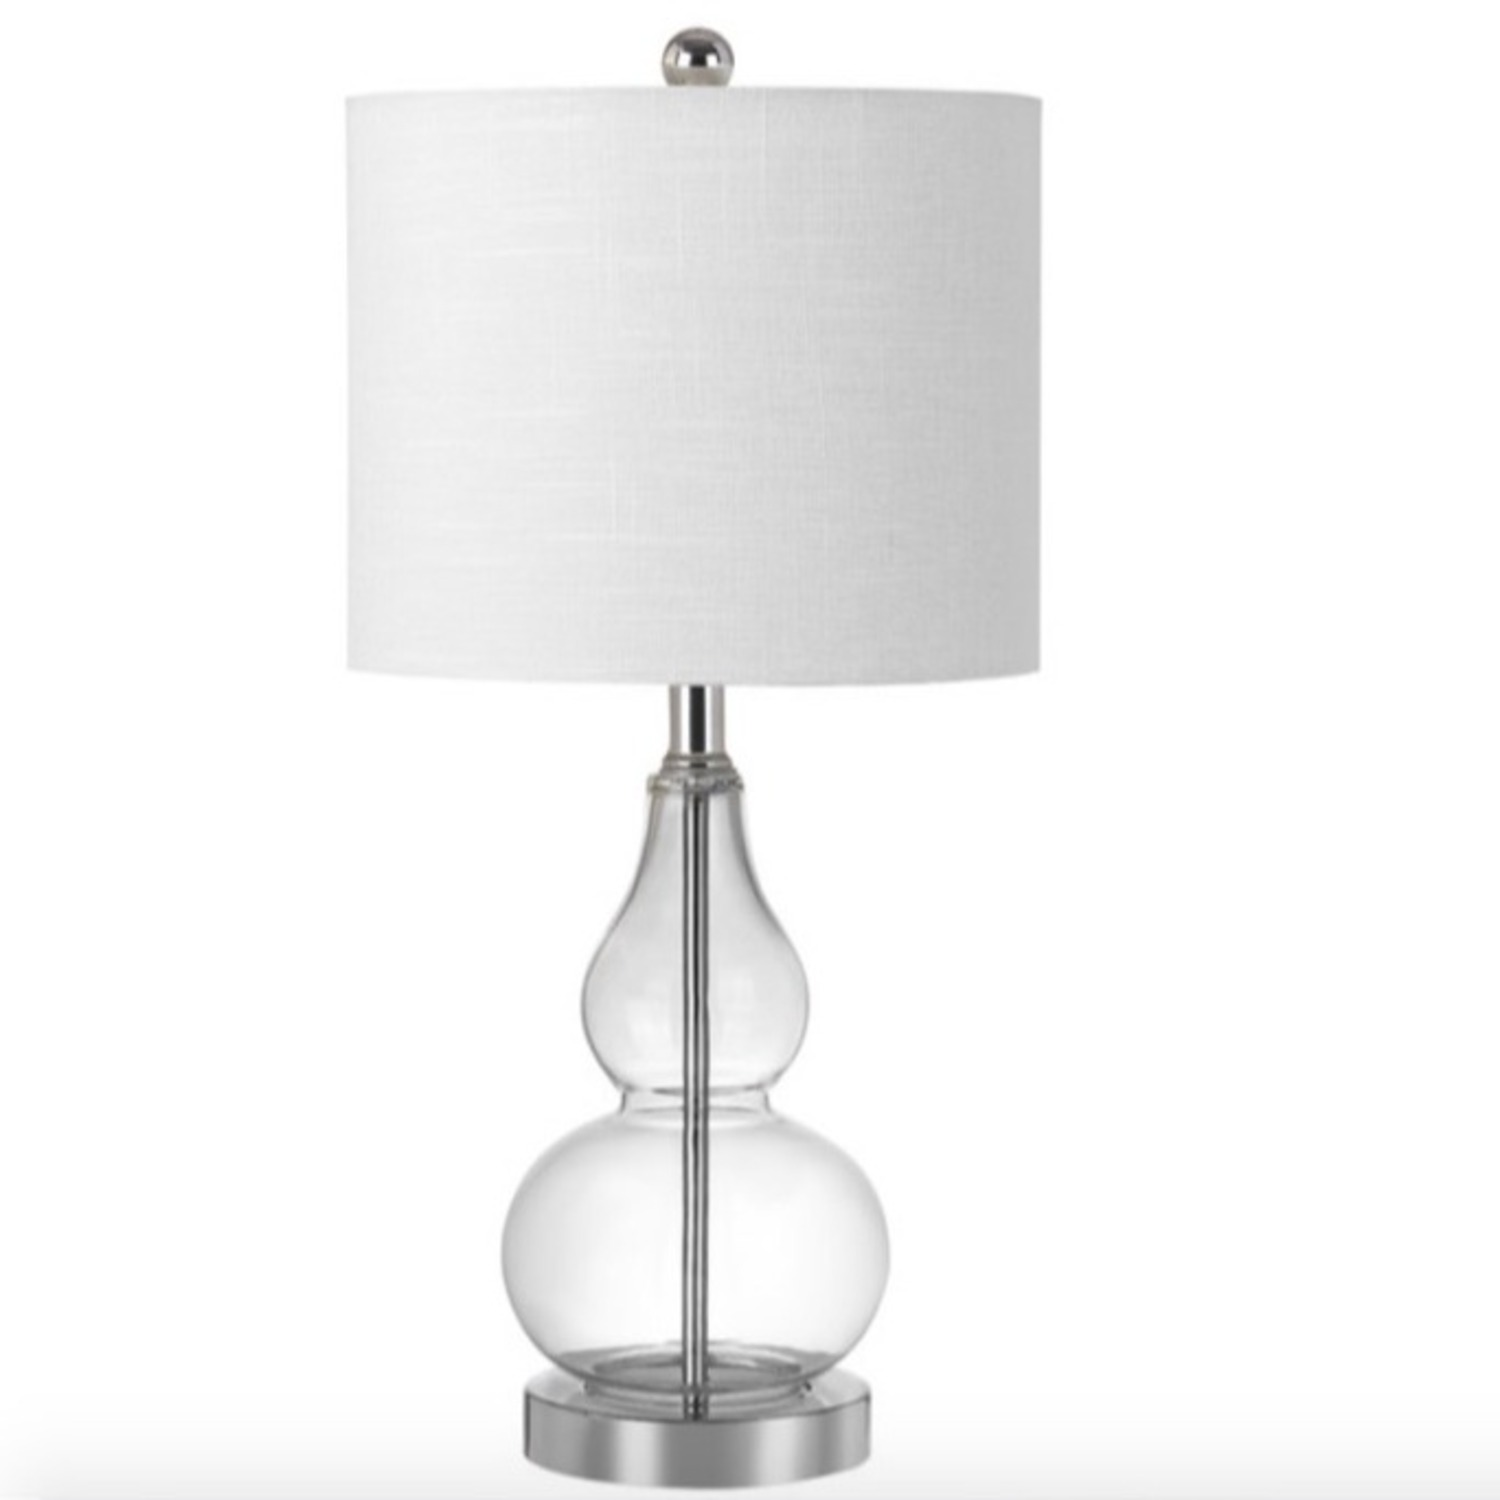 Houzz Two Glass and White Fabric Table Lamps - image-6